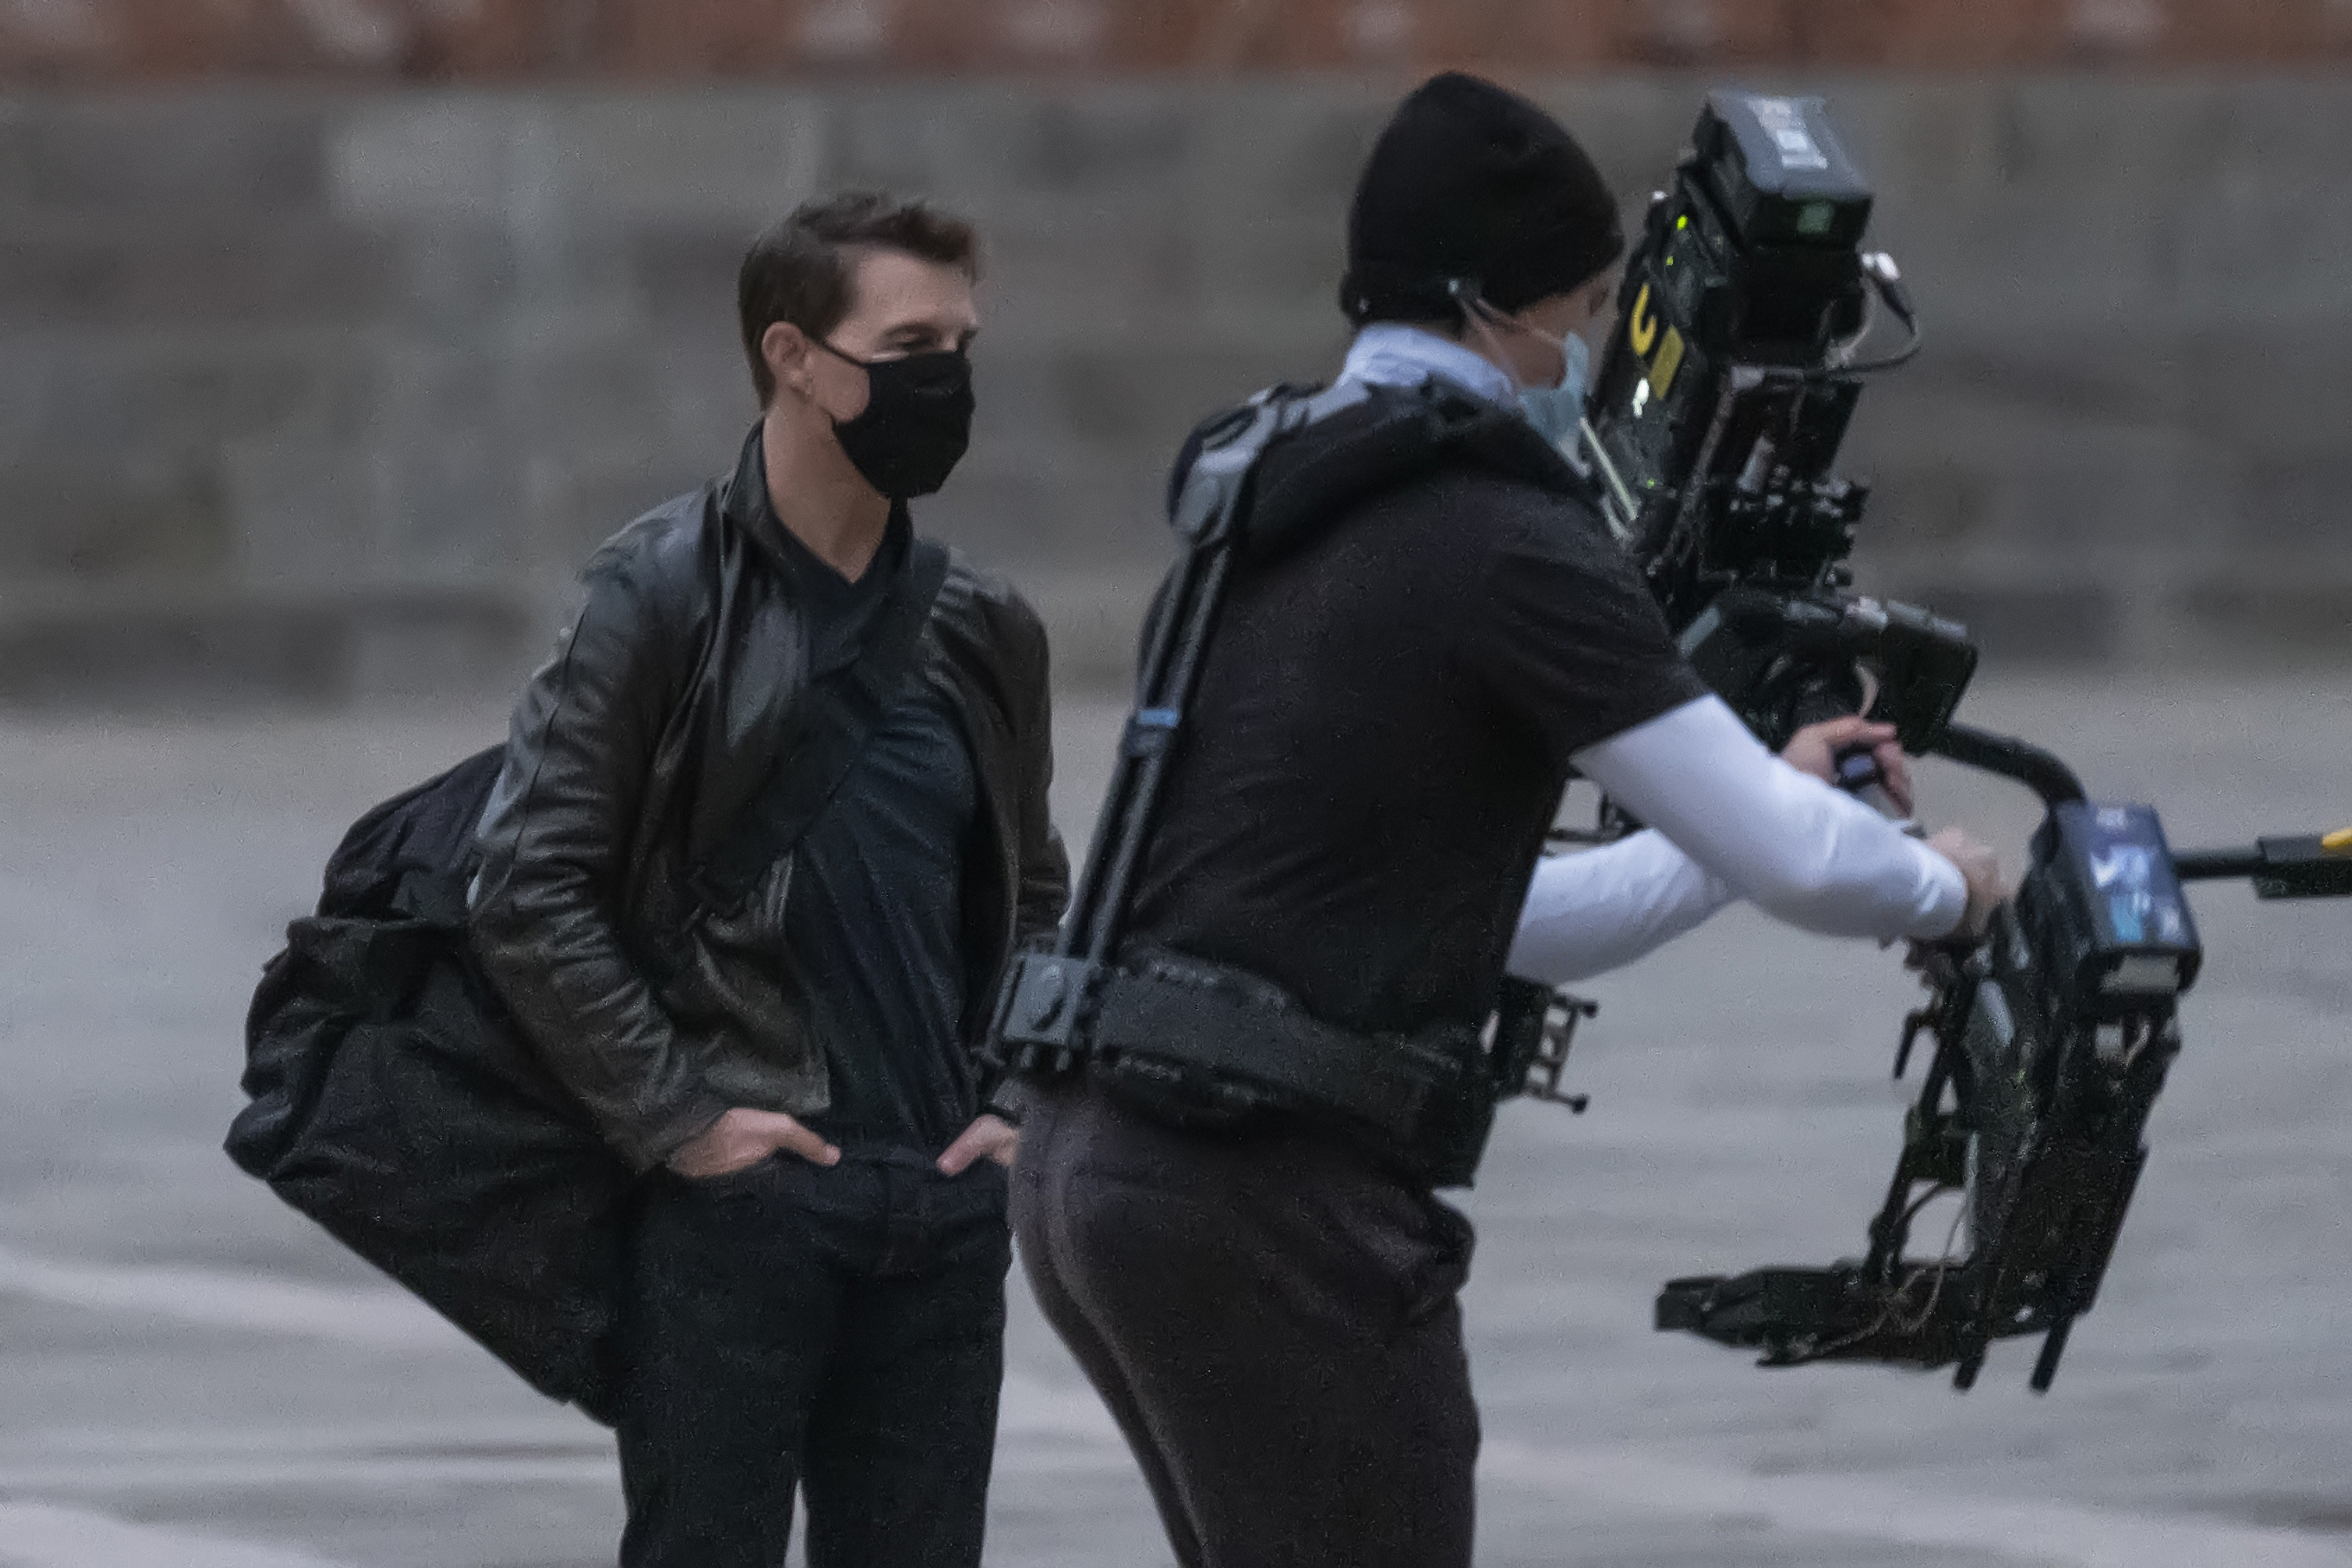 Tom watches a camera operator from a distance while wearing a mask